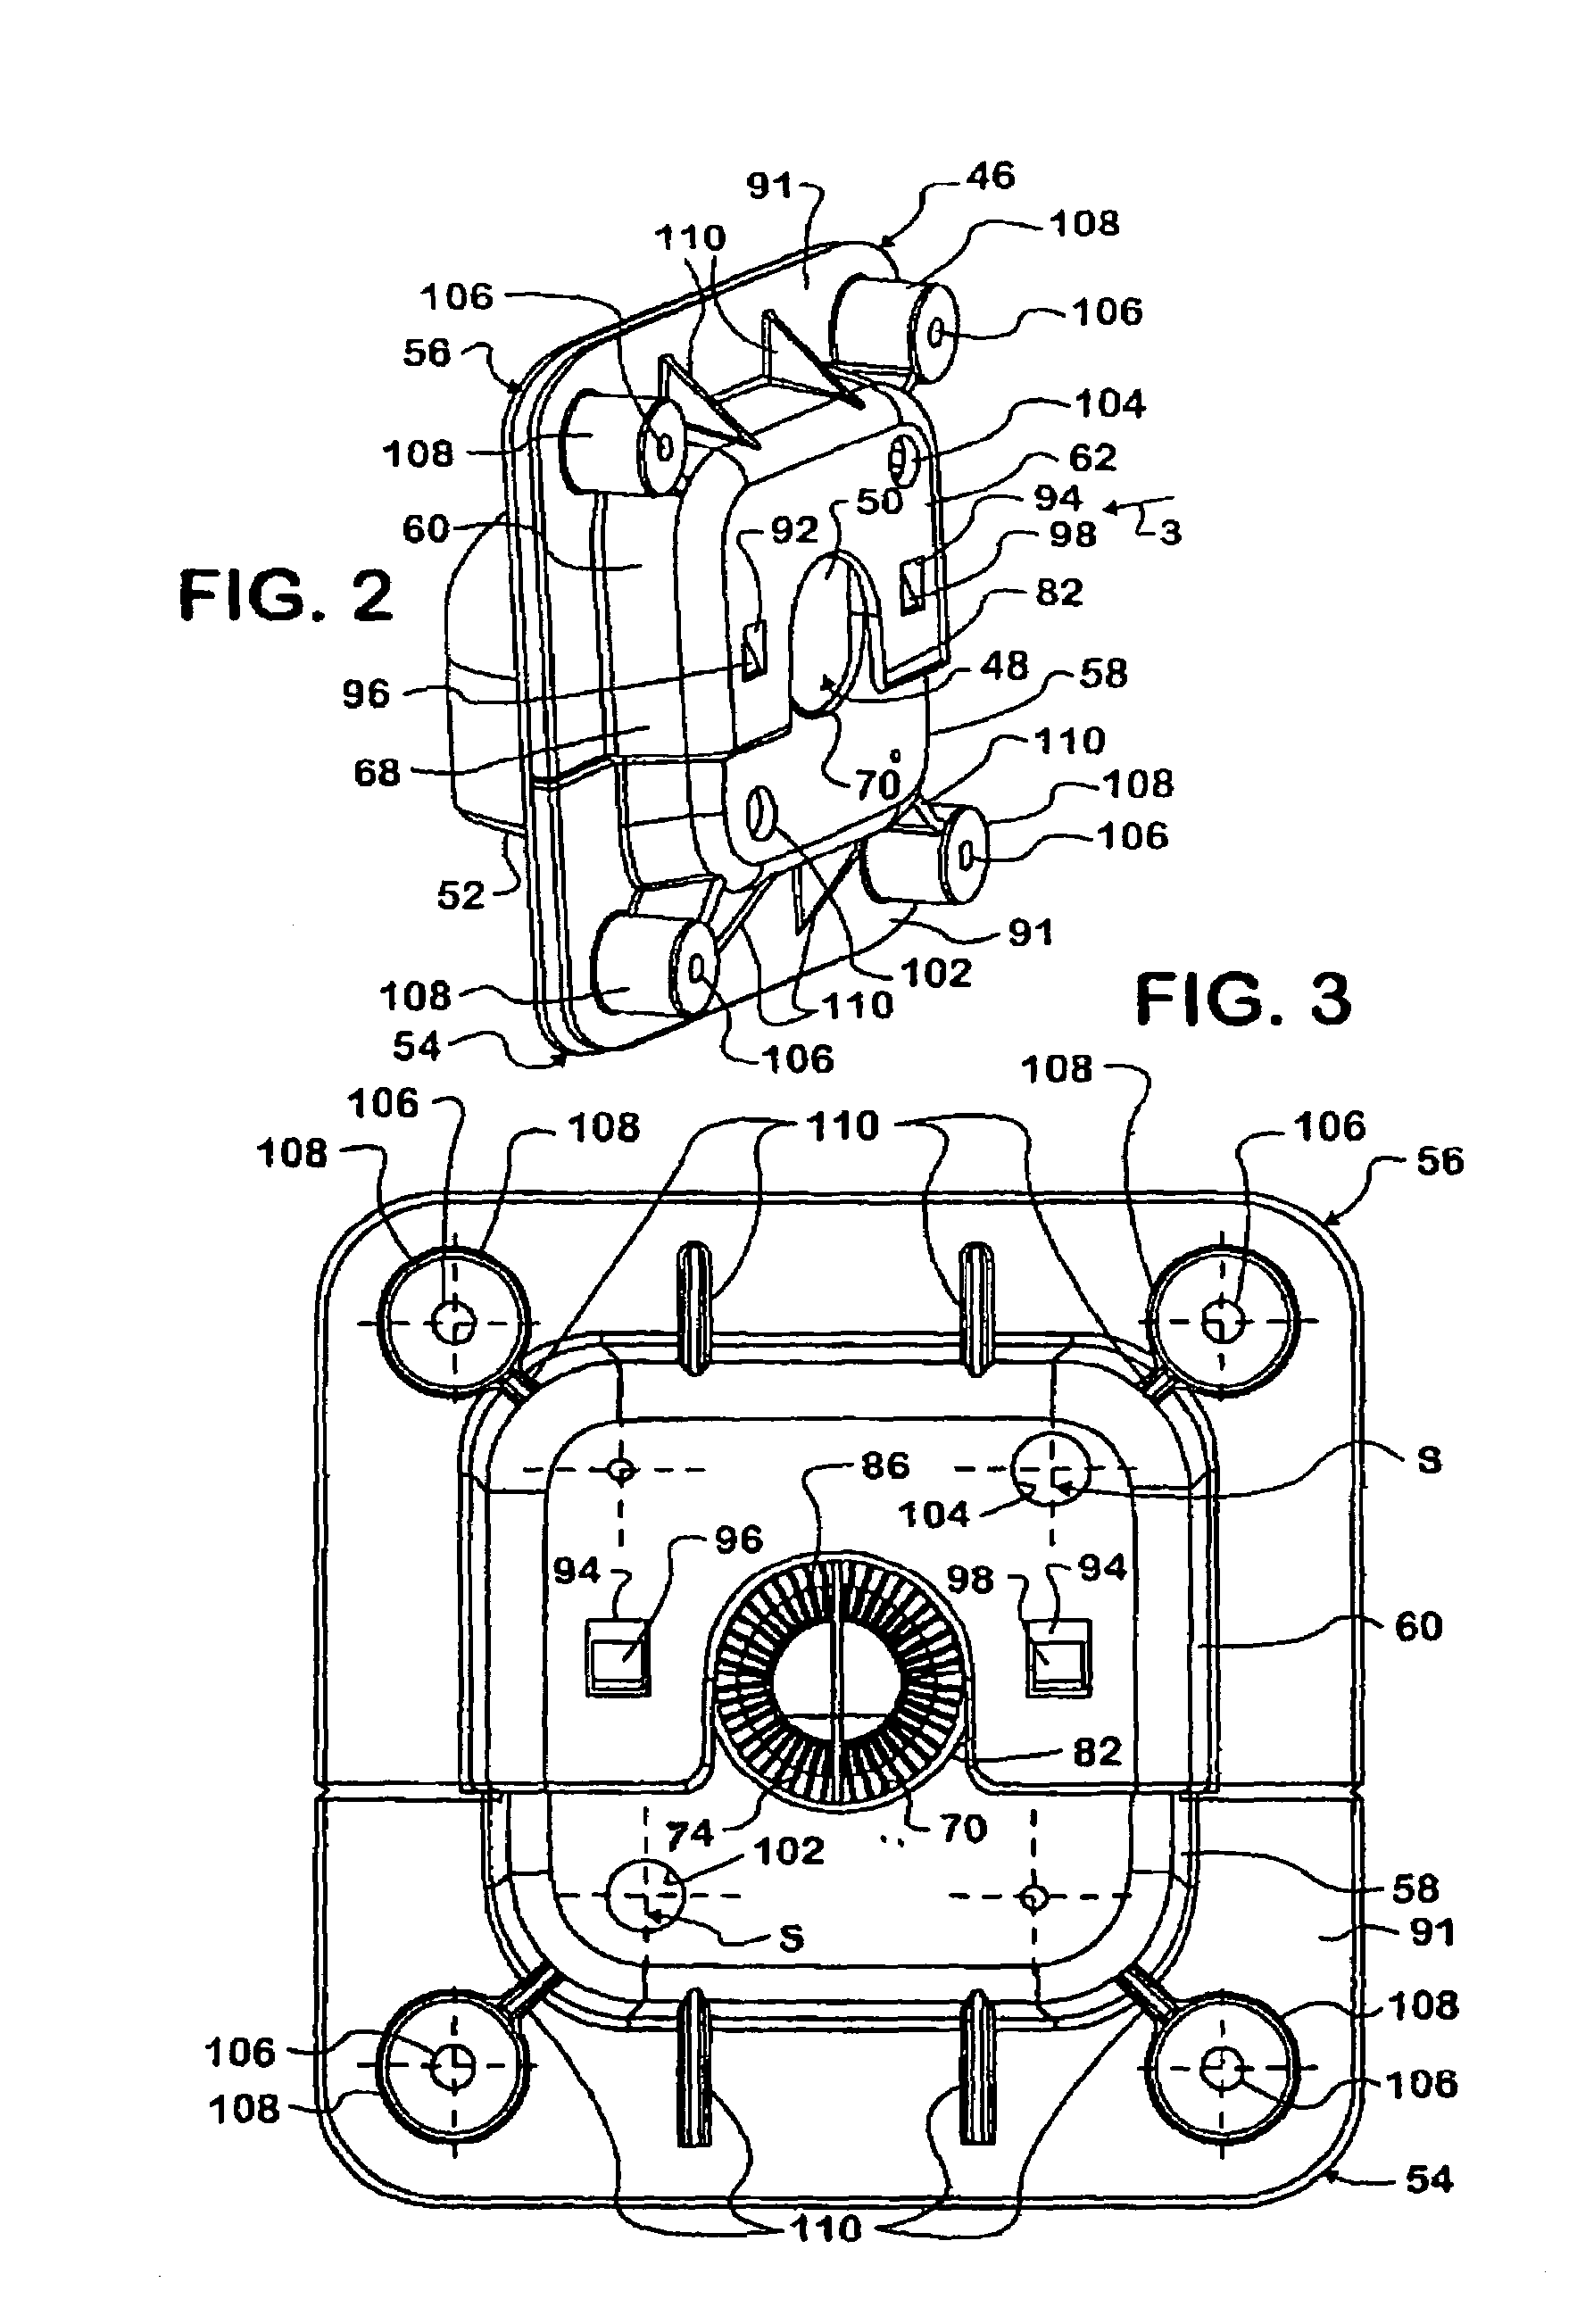 patent us7273986 - two-piece pass-through grommet for a motor vehicle wiring harness